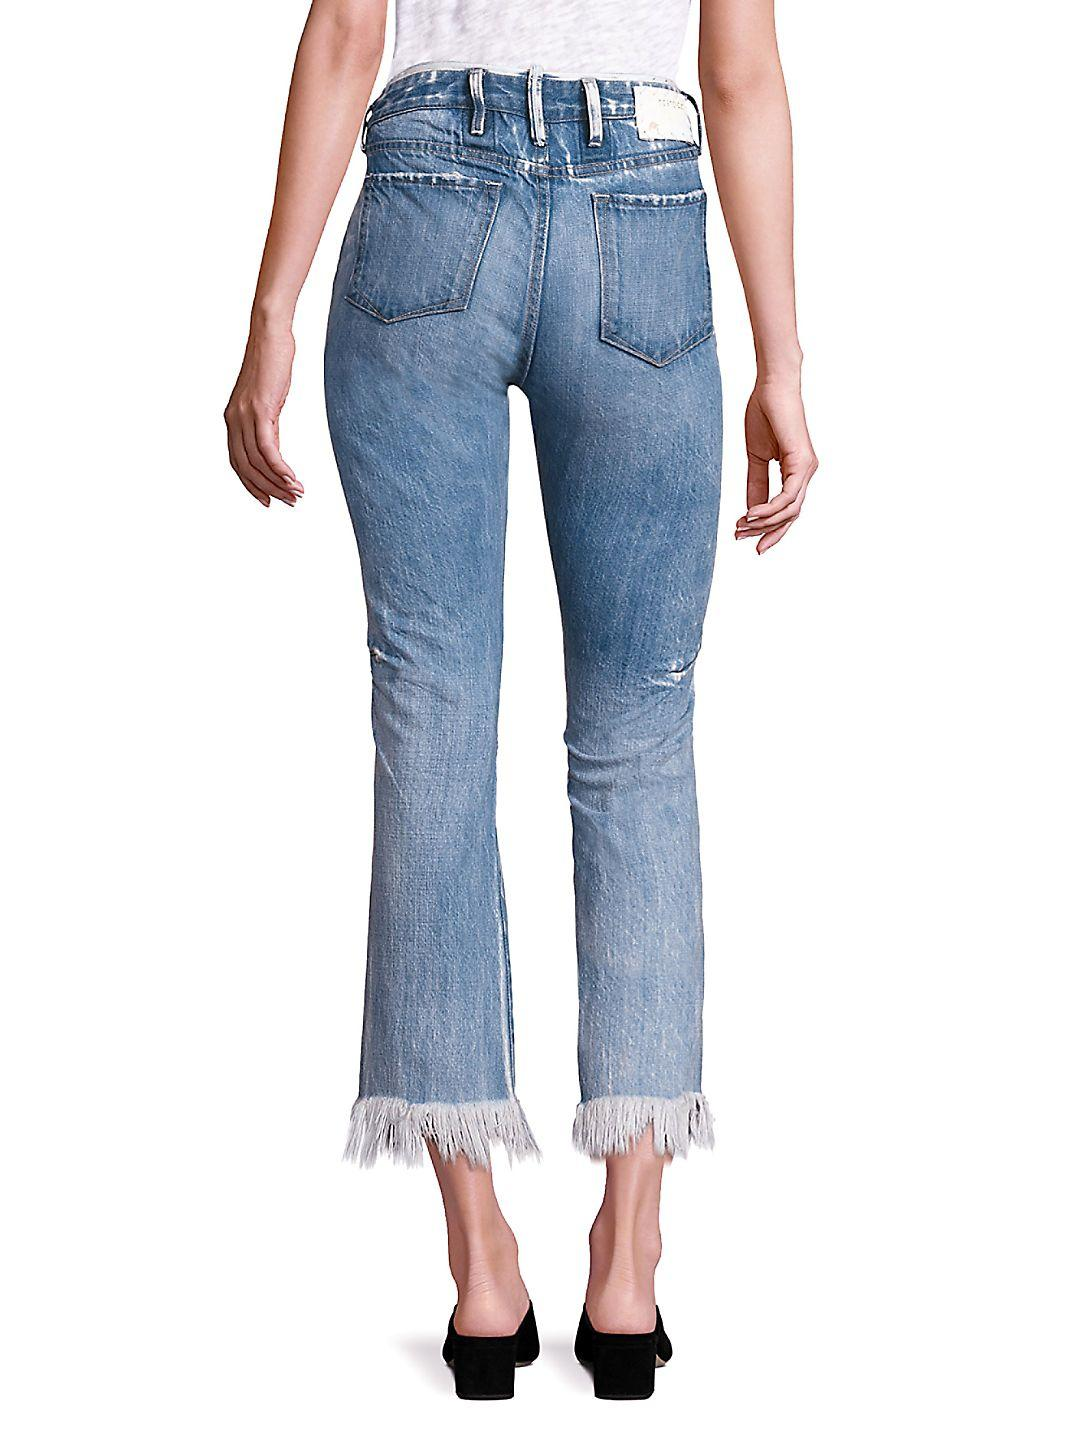 Tortoise Denim Bellatula High-waist Cropped Flared Jeans in Sky Blue (Blue)